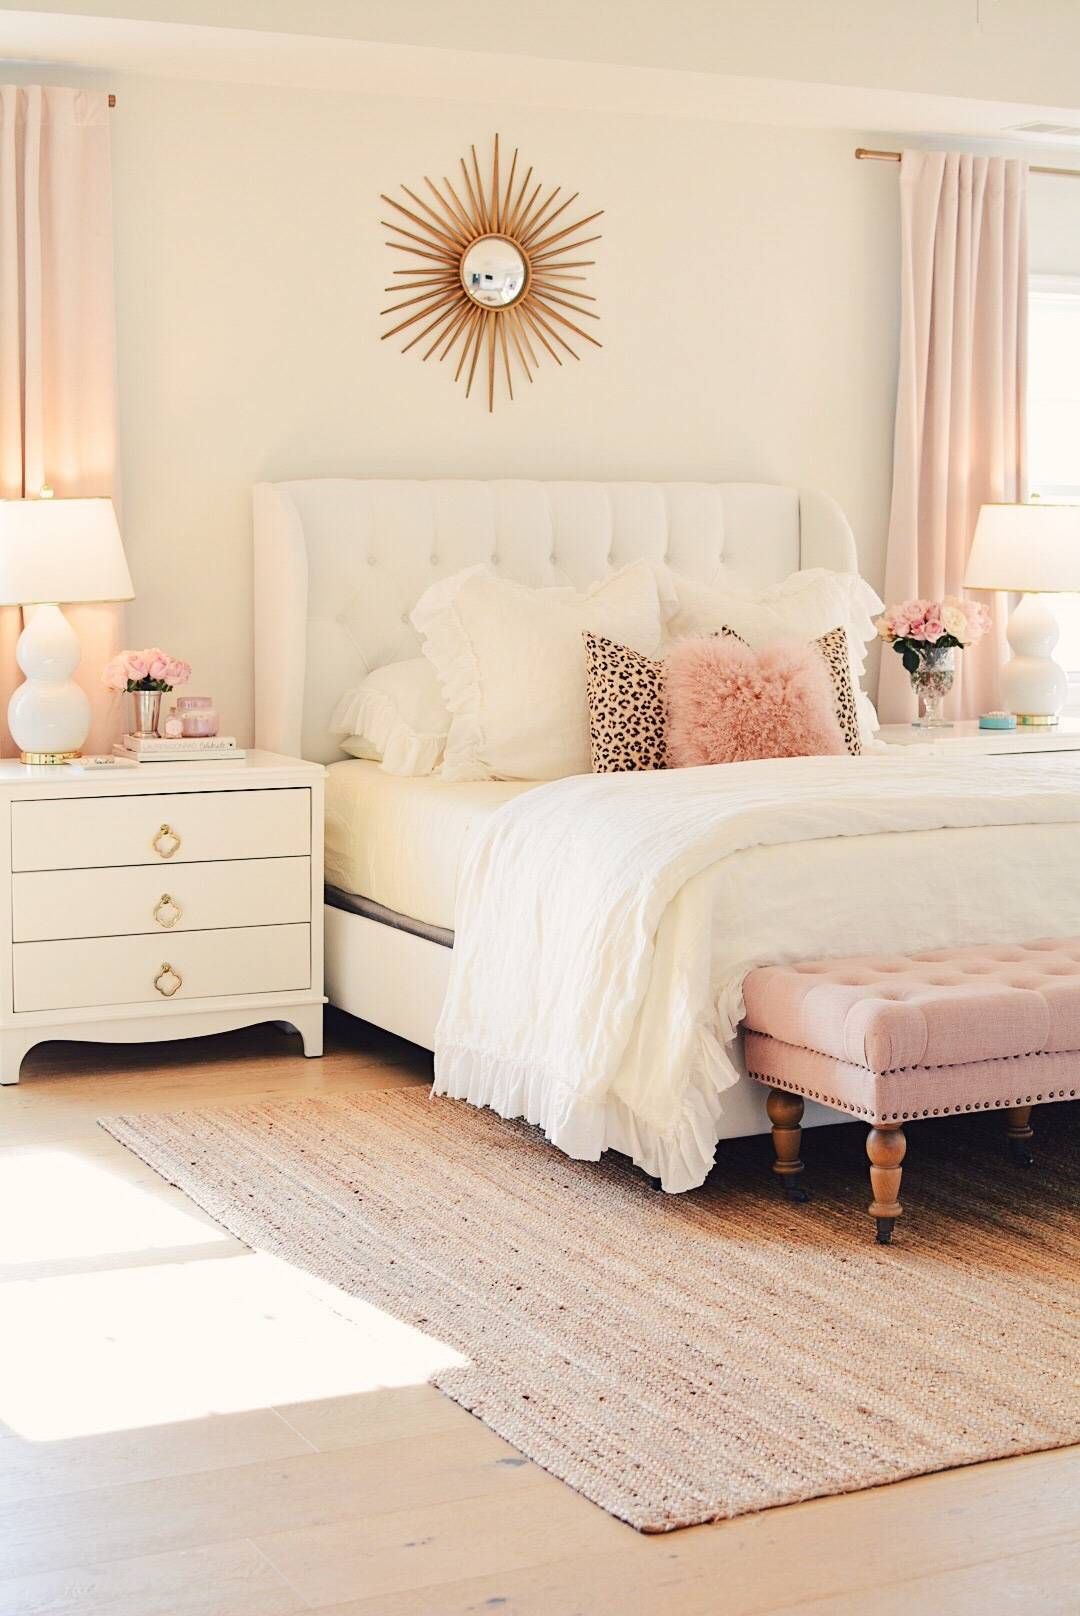 Bedroom Decor Ideas A Romantic Master Bedroom Makeover The Pink Dream Mismatched Living Room Furniture Bedroom Decorating Tips Apartment Bedroom Decor